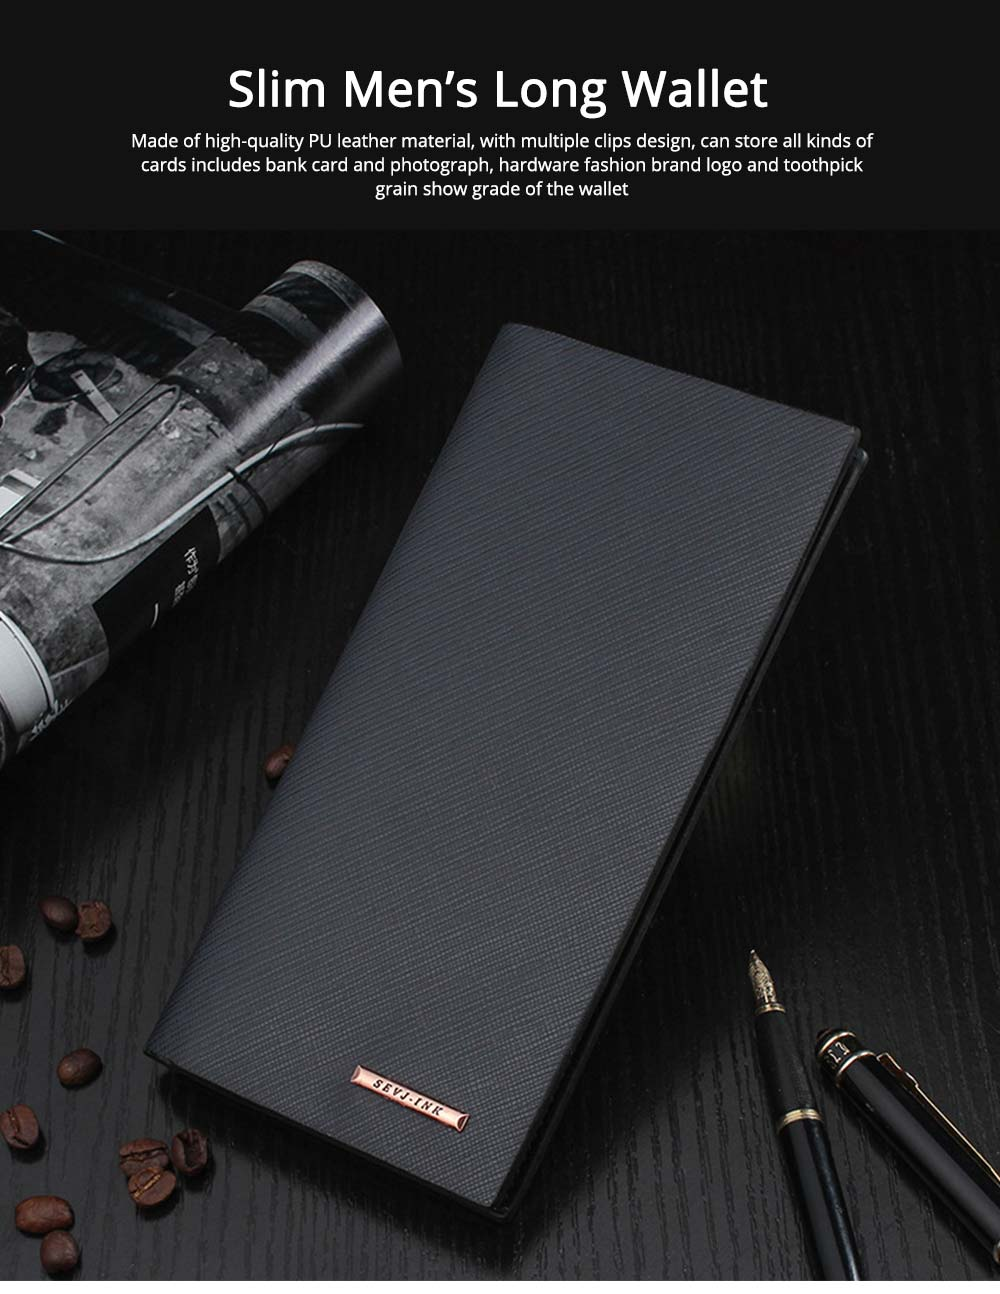 Long and Slim Men's Wallet with Study and Durable PU Leather Material, Hardware Fashion Brand Logo Business Wallet 0